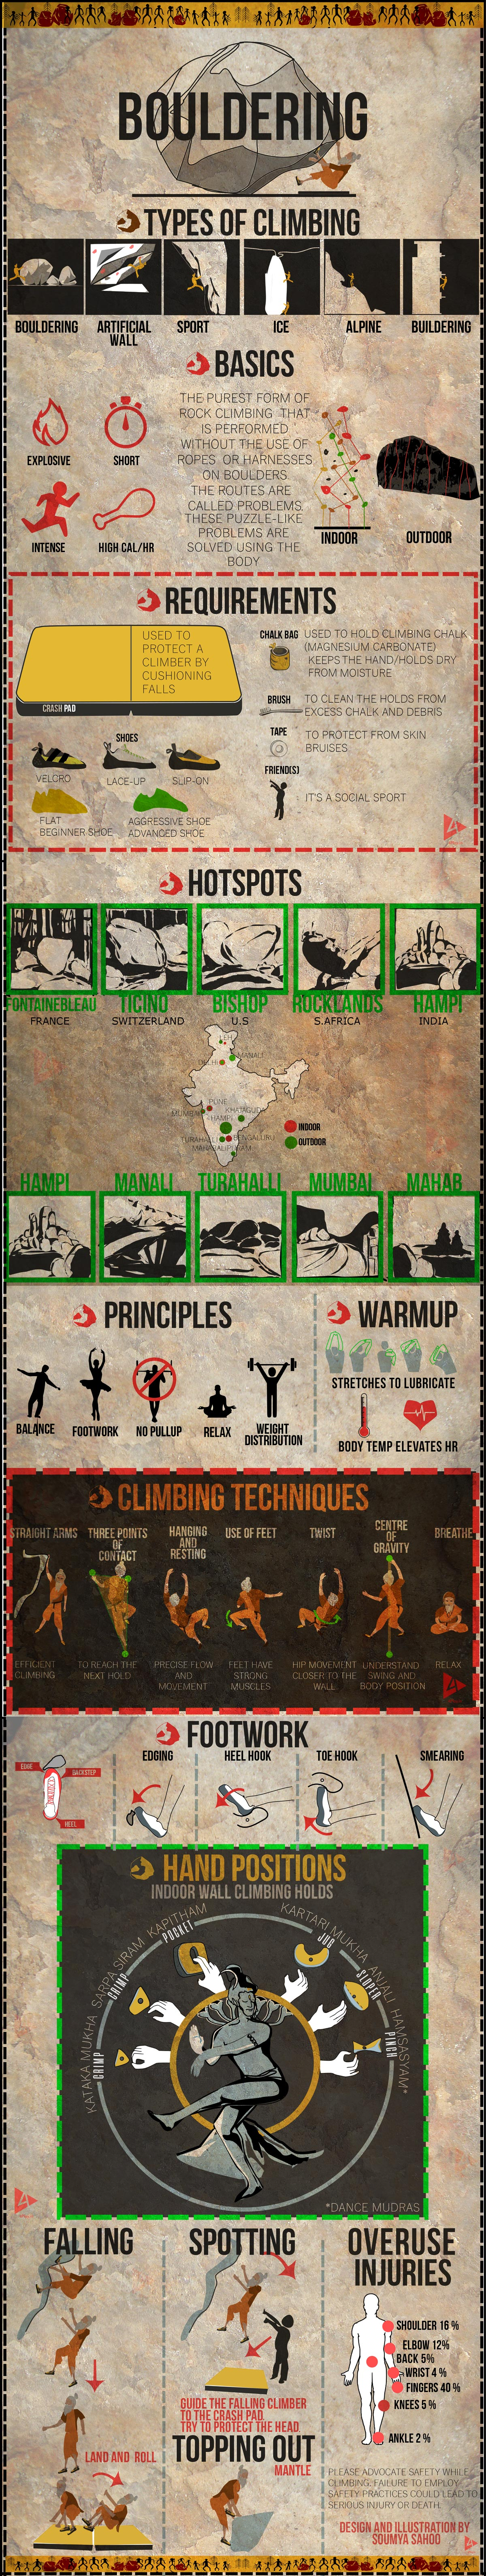 Complete Bouldering Infographic | 4Play